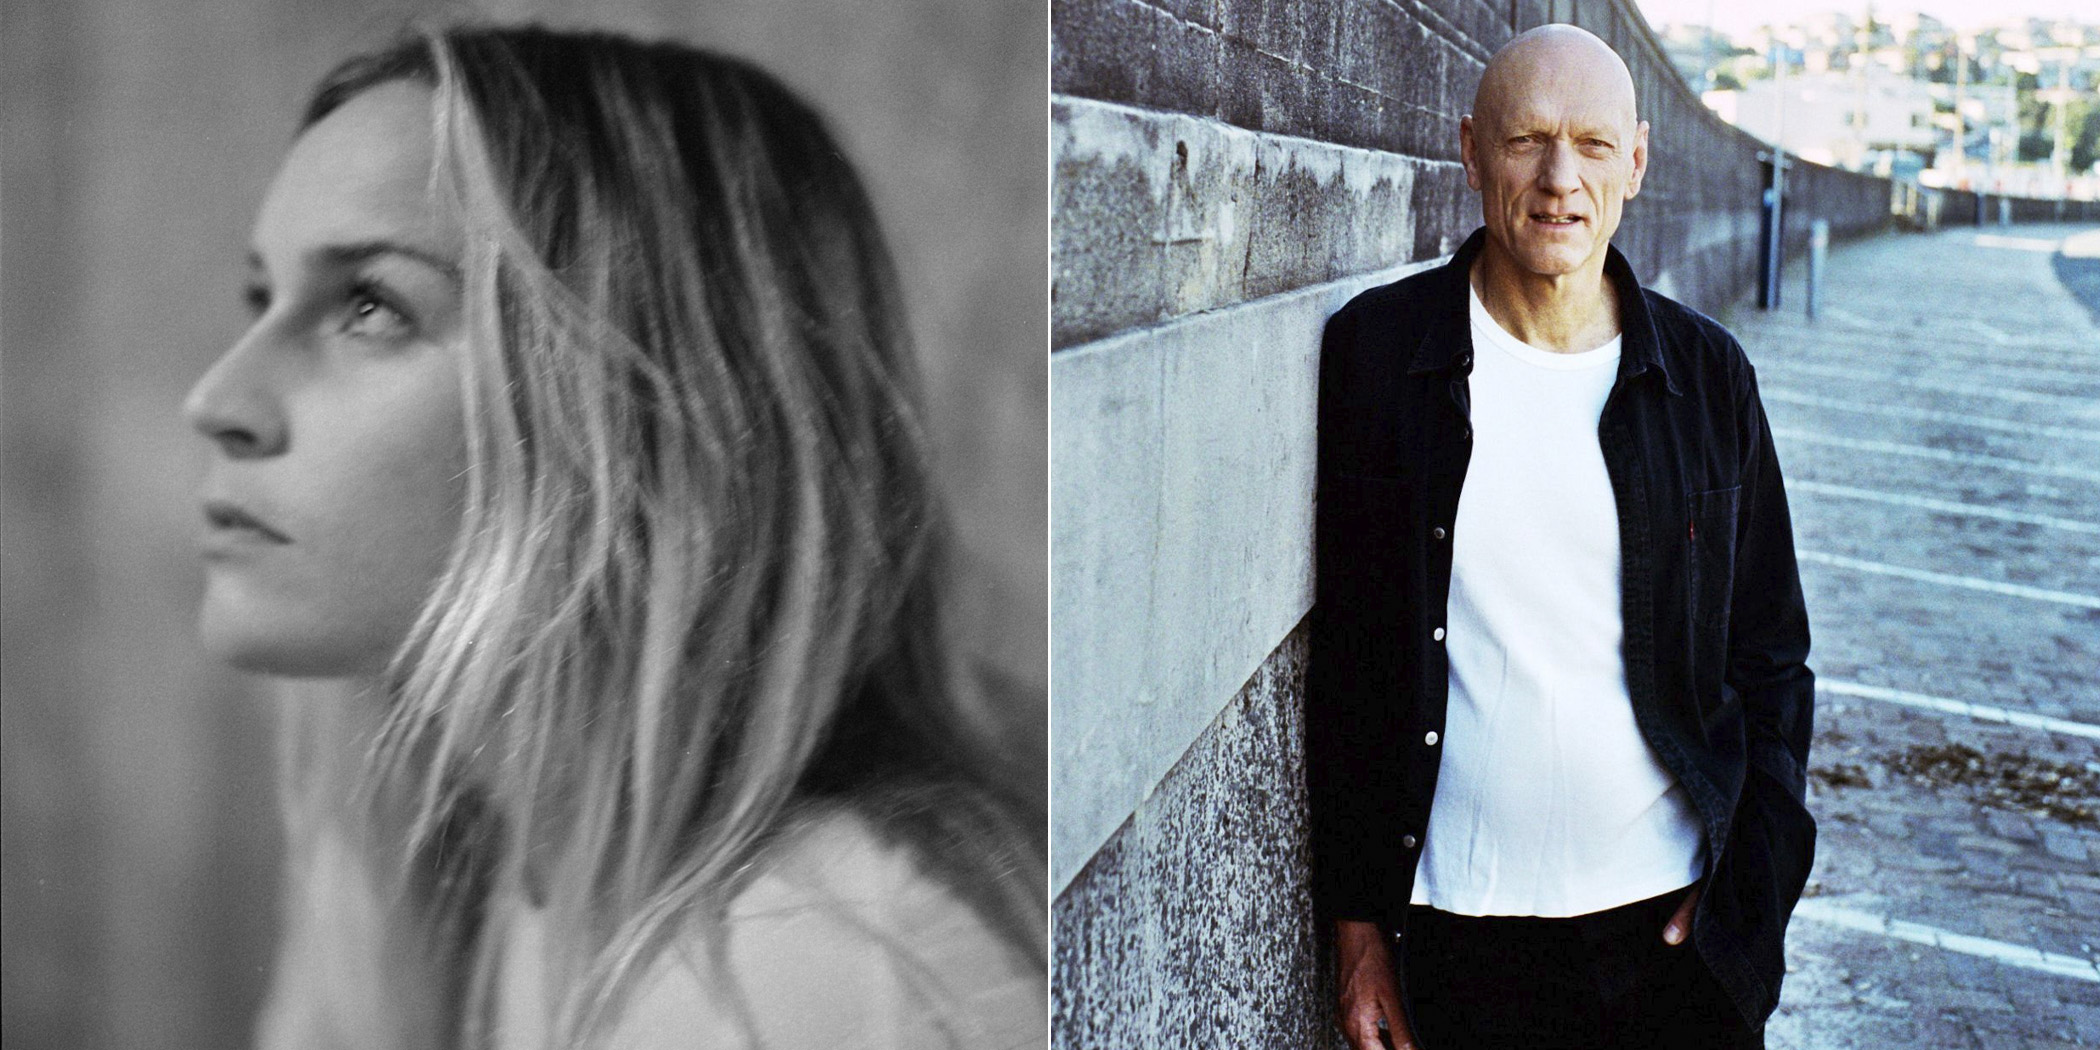 2 panel image of Jack River and Peter Garrett